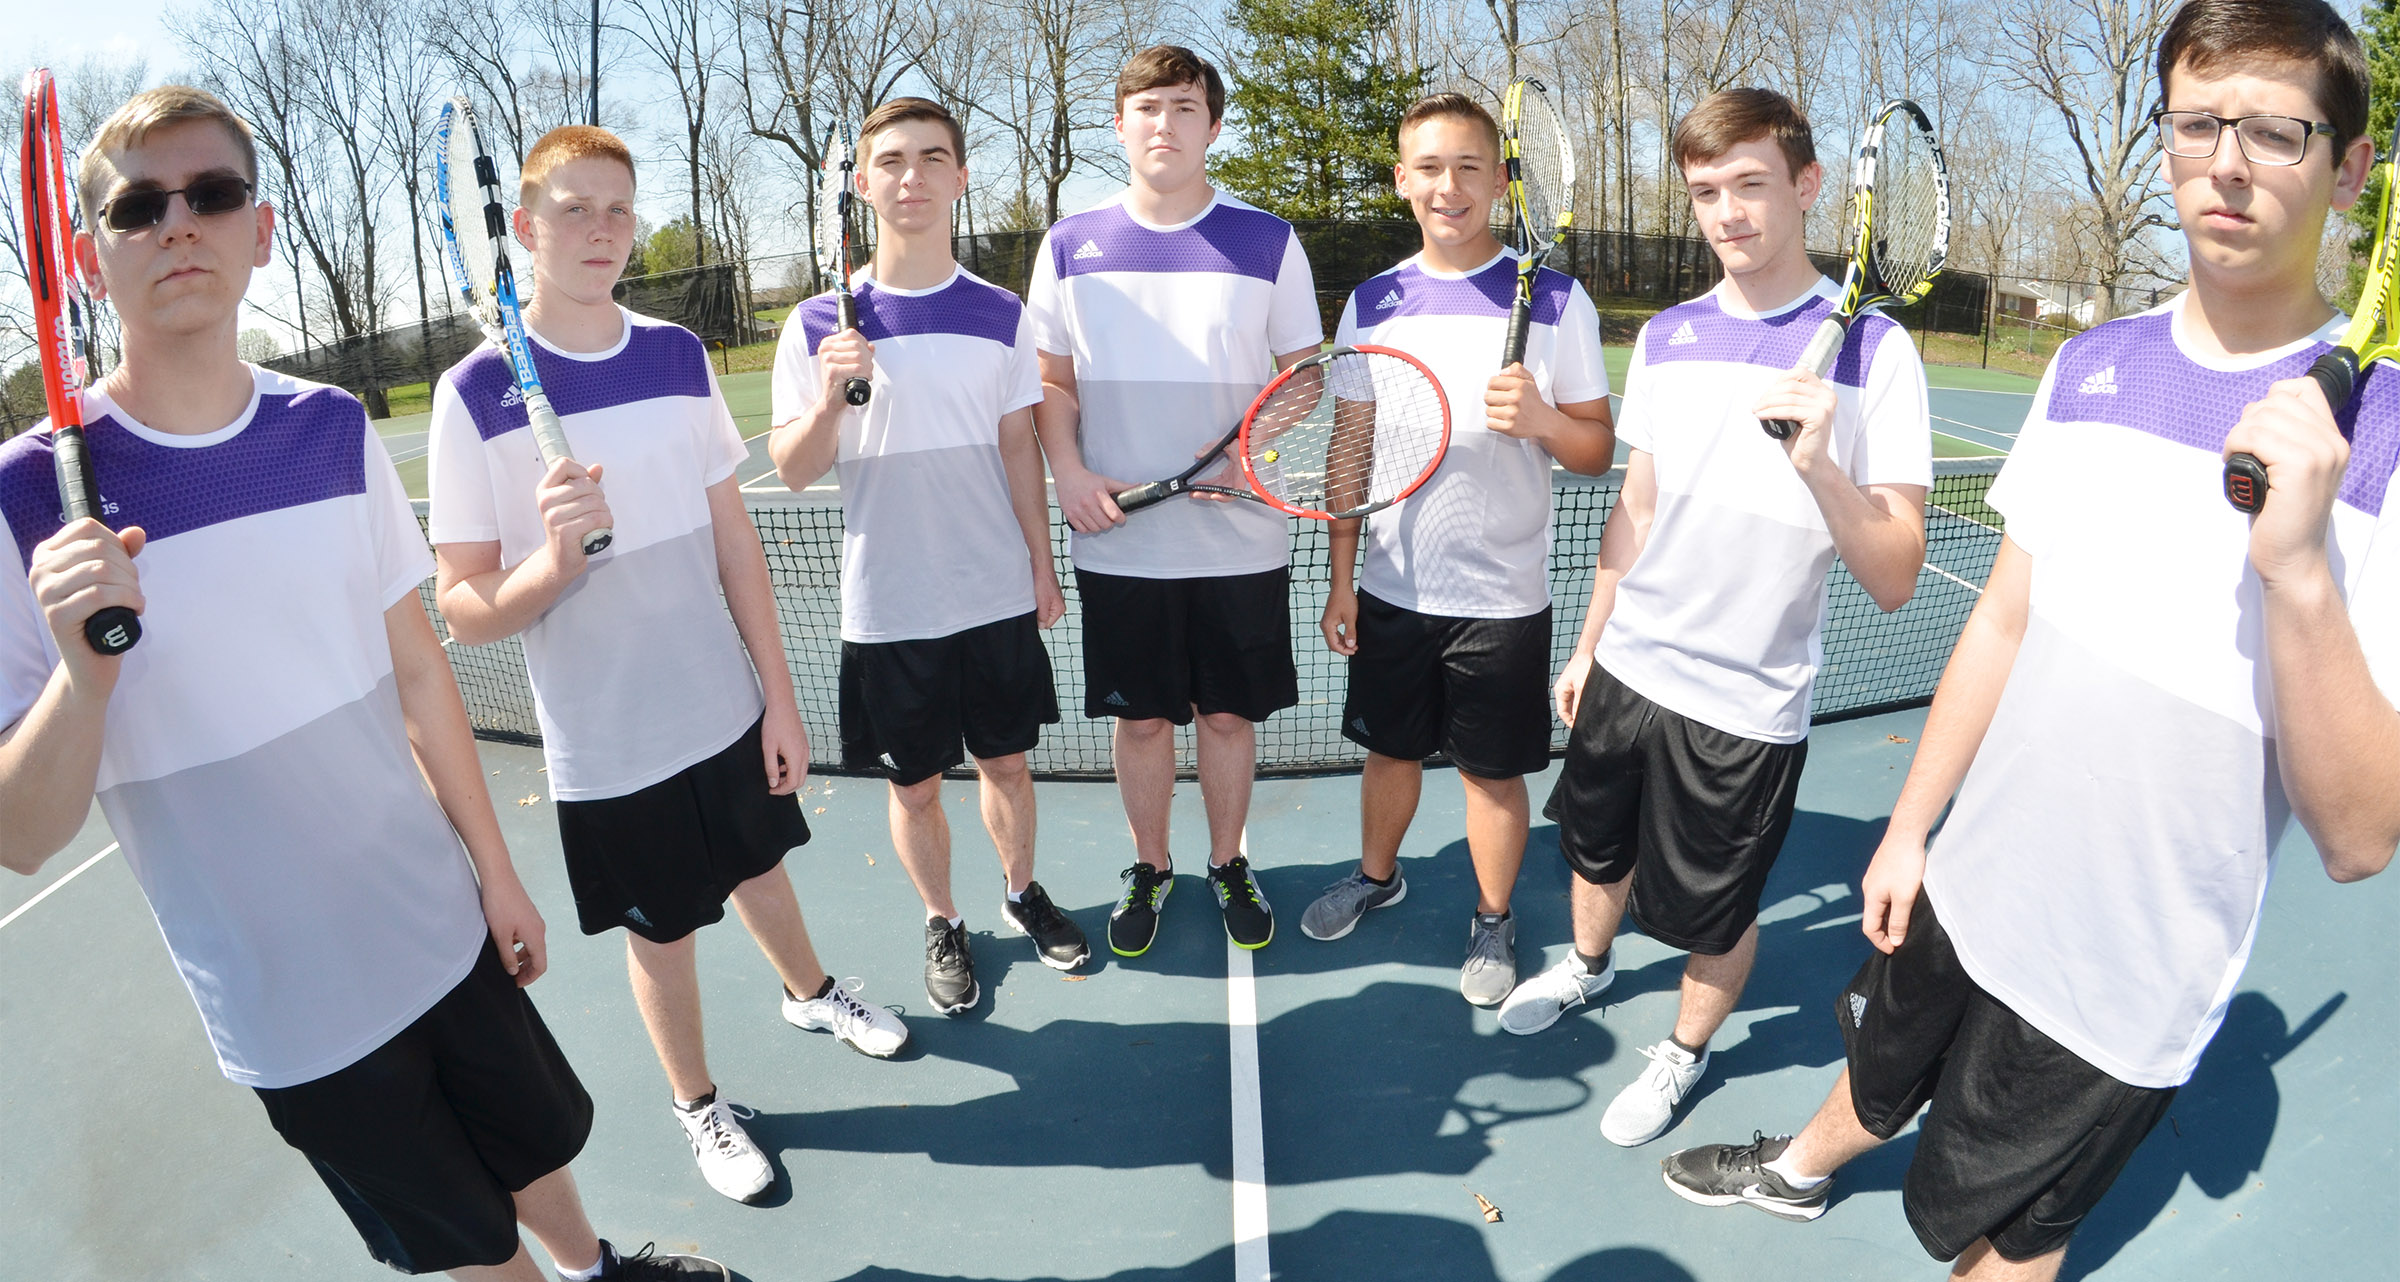 This year's CHS boys' tennis team is, from left, sophomore Brandon Greer, freshman Patrick Walker, junior Cass Kidwell, senior Zack Settle, juniors Cody Davis and Jackson Hunt and Campbellsville Middle School eighth-grader Devan Keith.